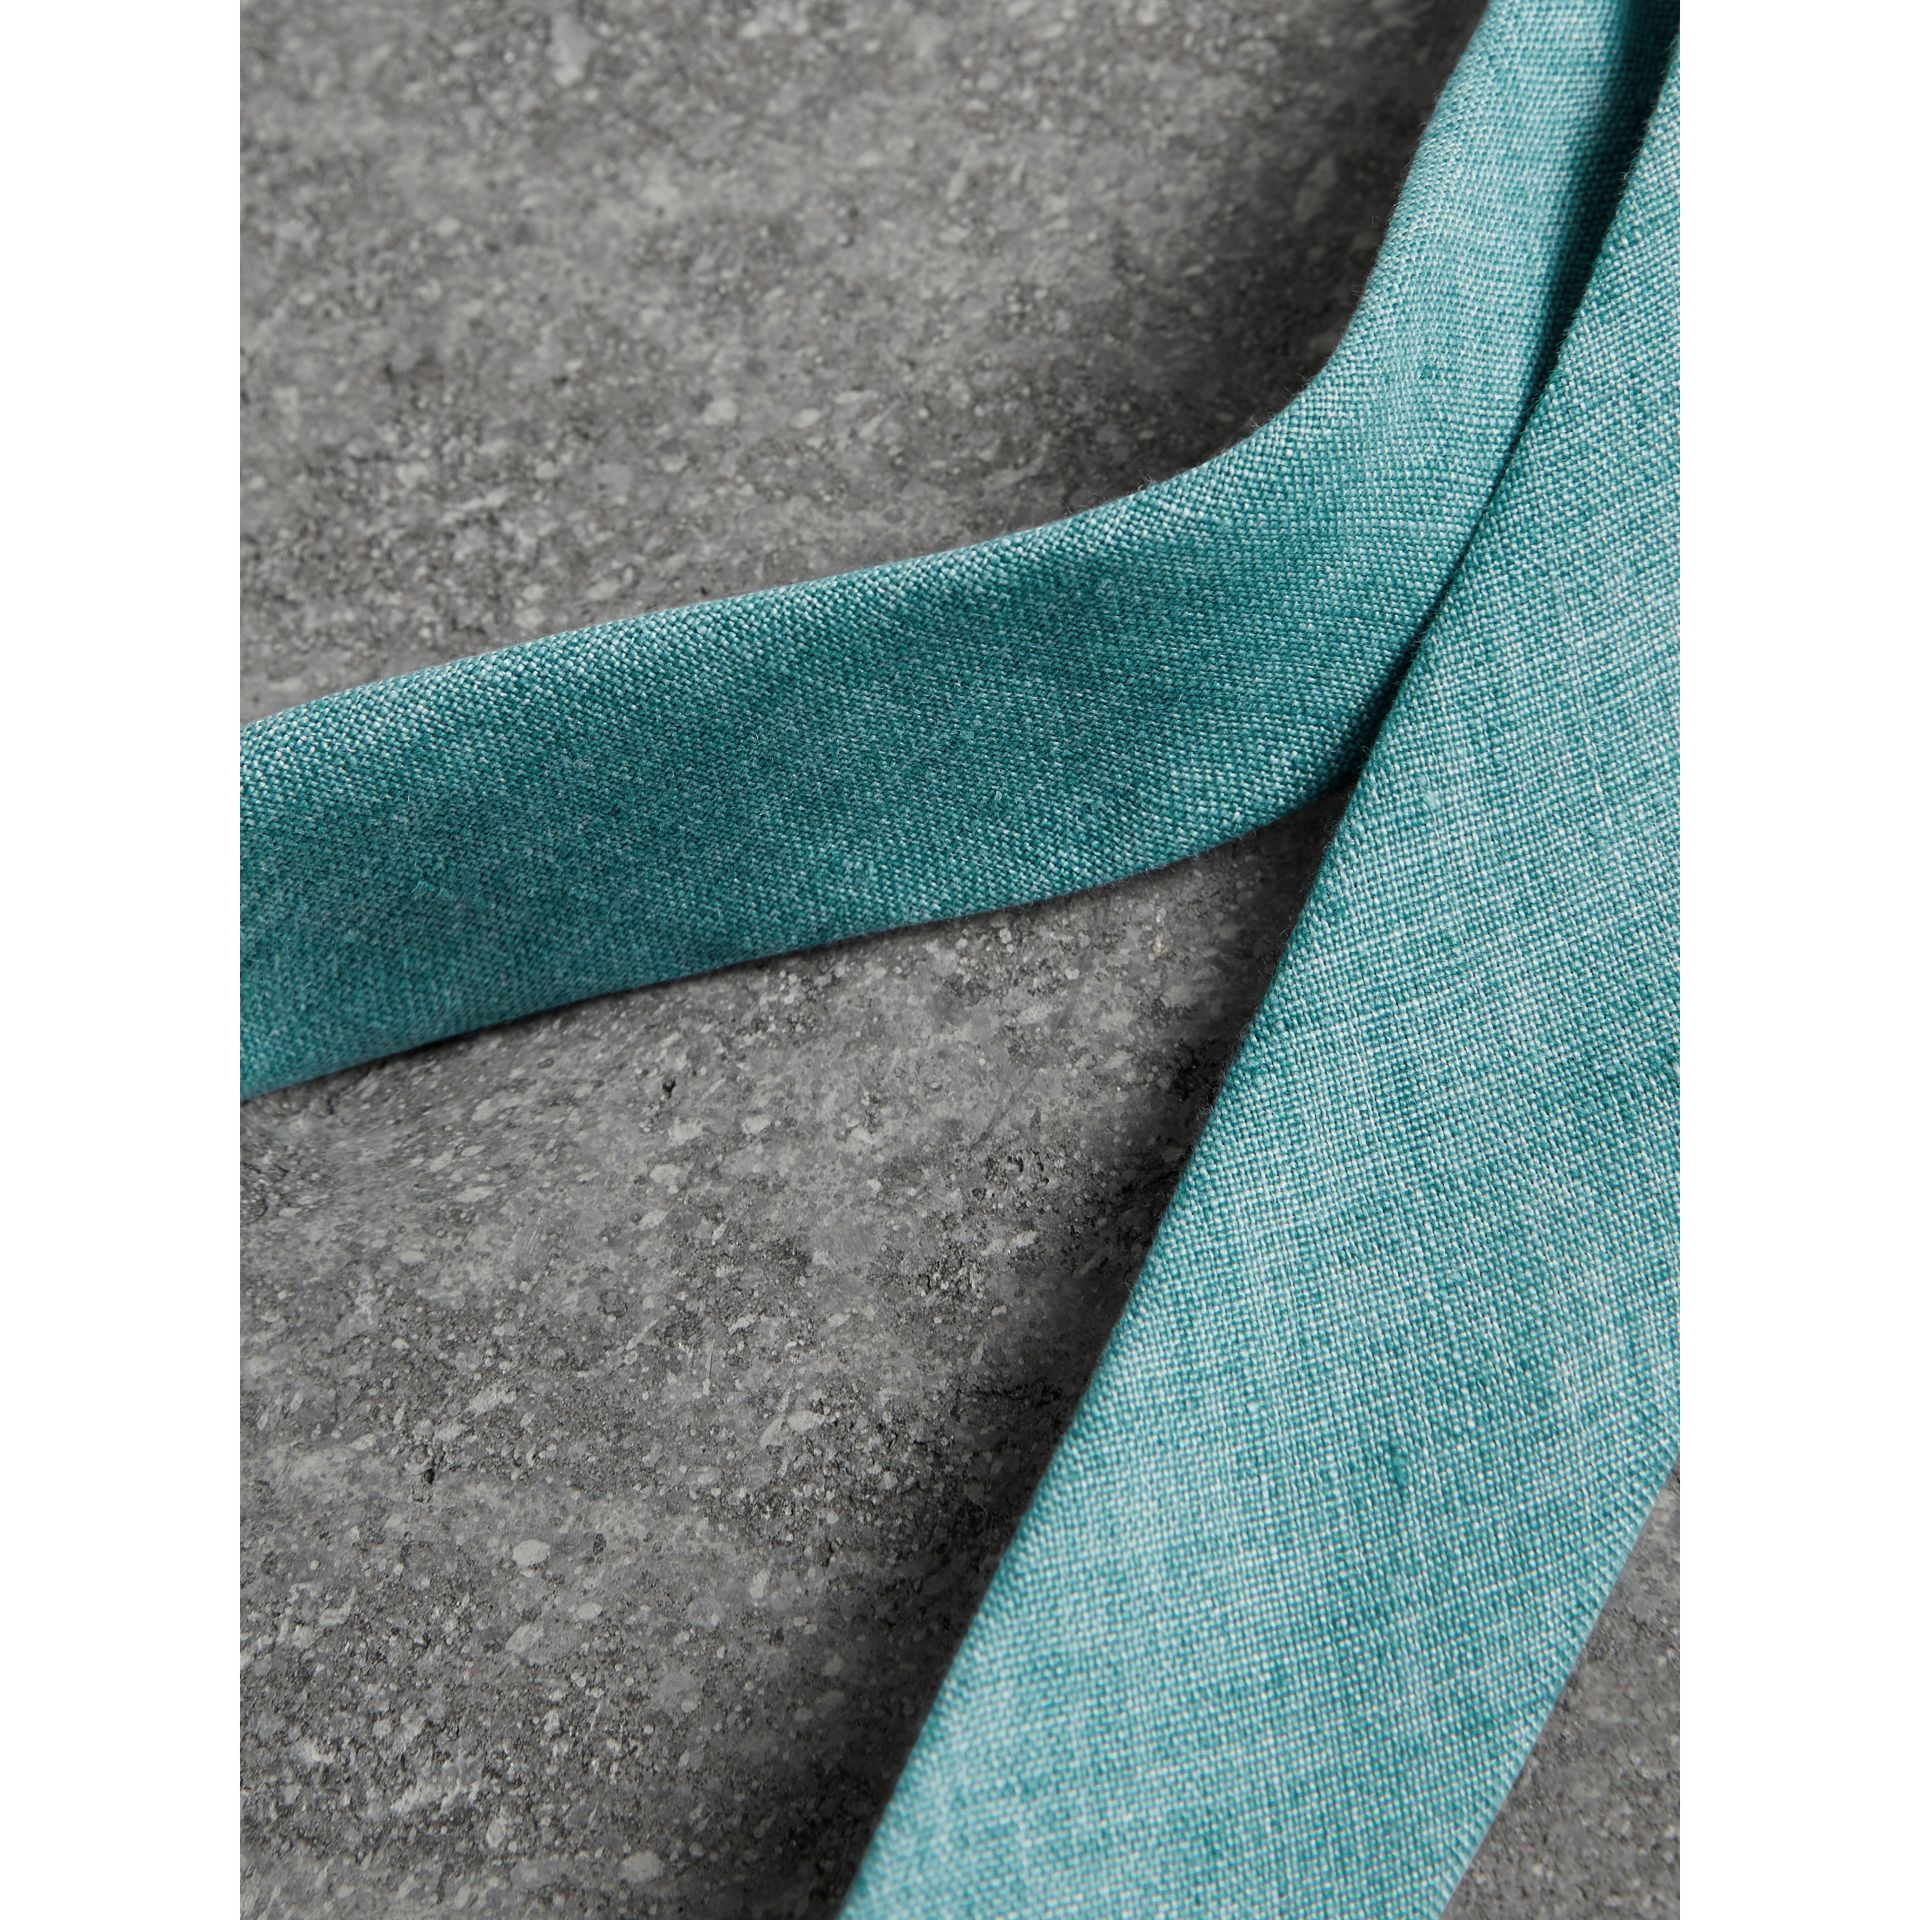 Slim Cut Linen Tie in Pale Turquoise - Men | Burberry Australia - gallery image 1